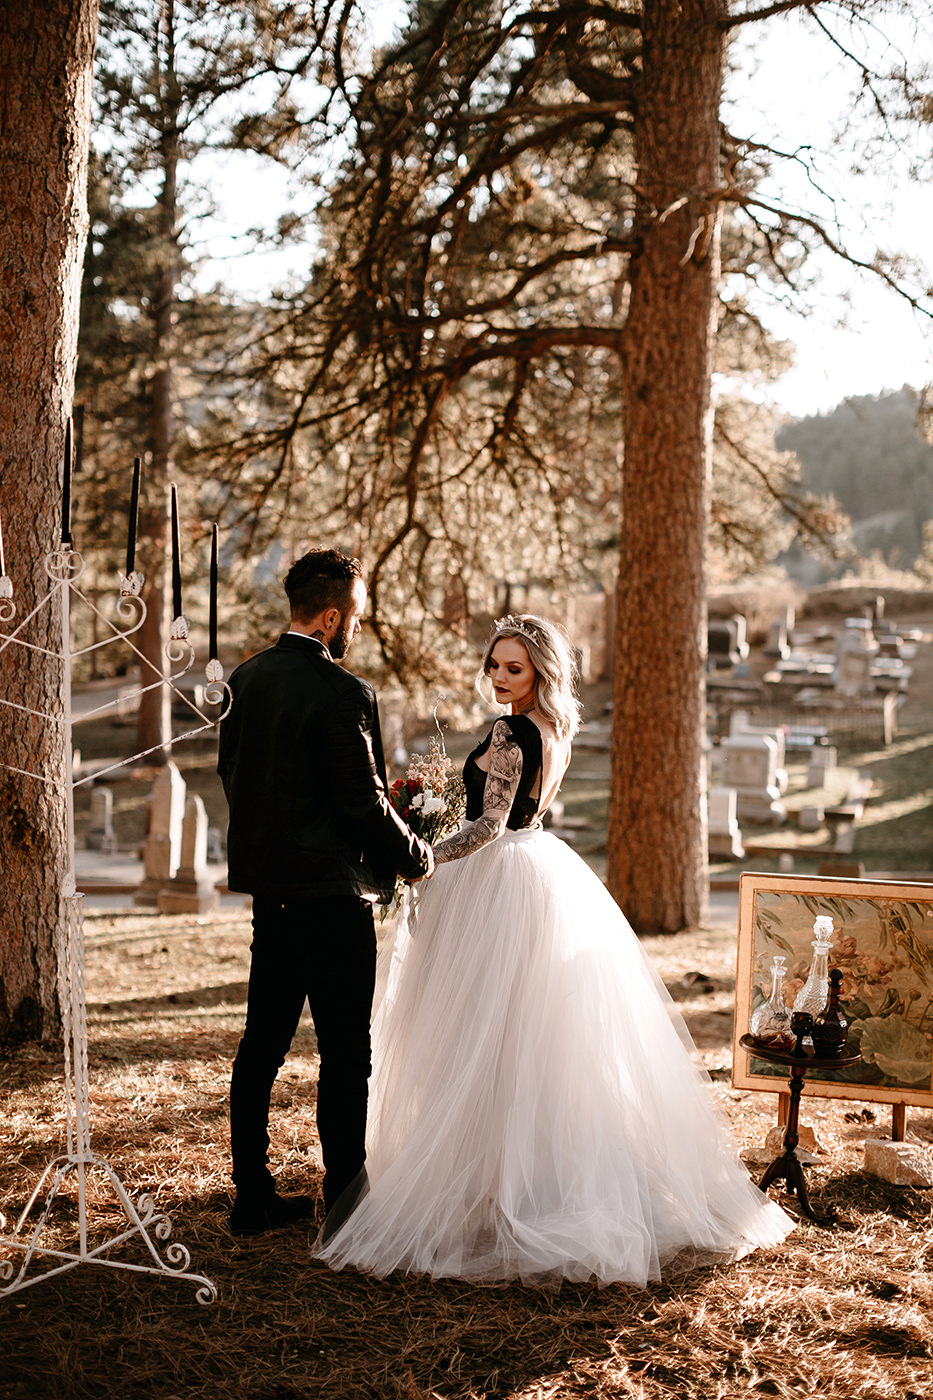 Liz Osban Photography Wedding Elopement Eloped engaged engagement couples session photographer deadwood south dakota wyoming beautiful vintage moody colorado mountains vintage best vintage lease martin mason hotel 78.jpg